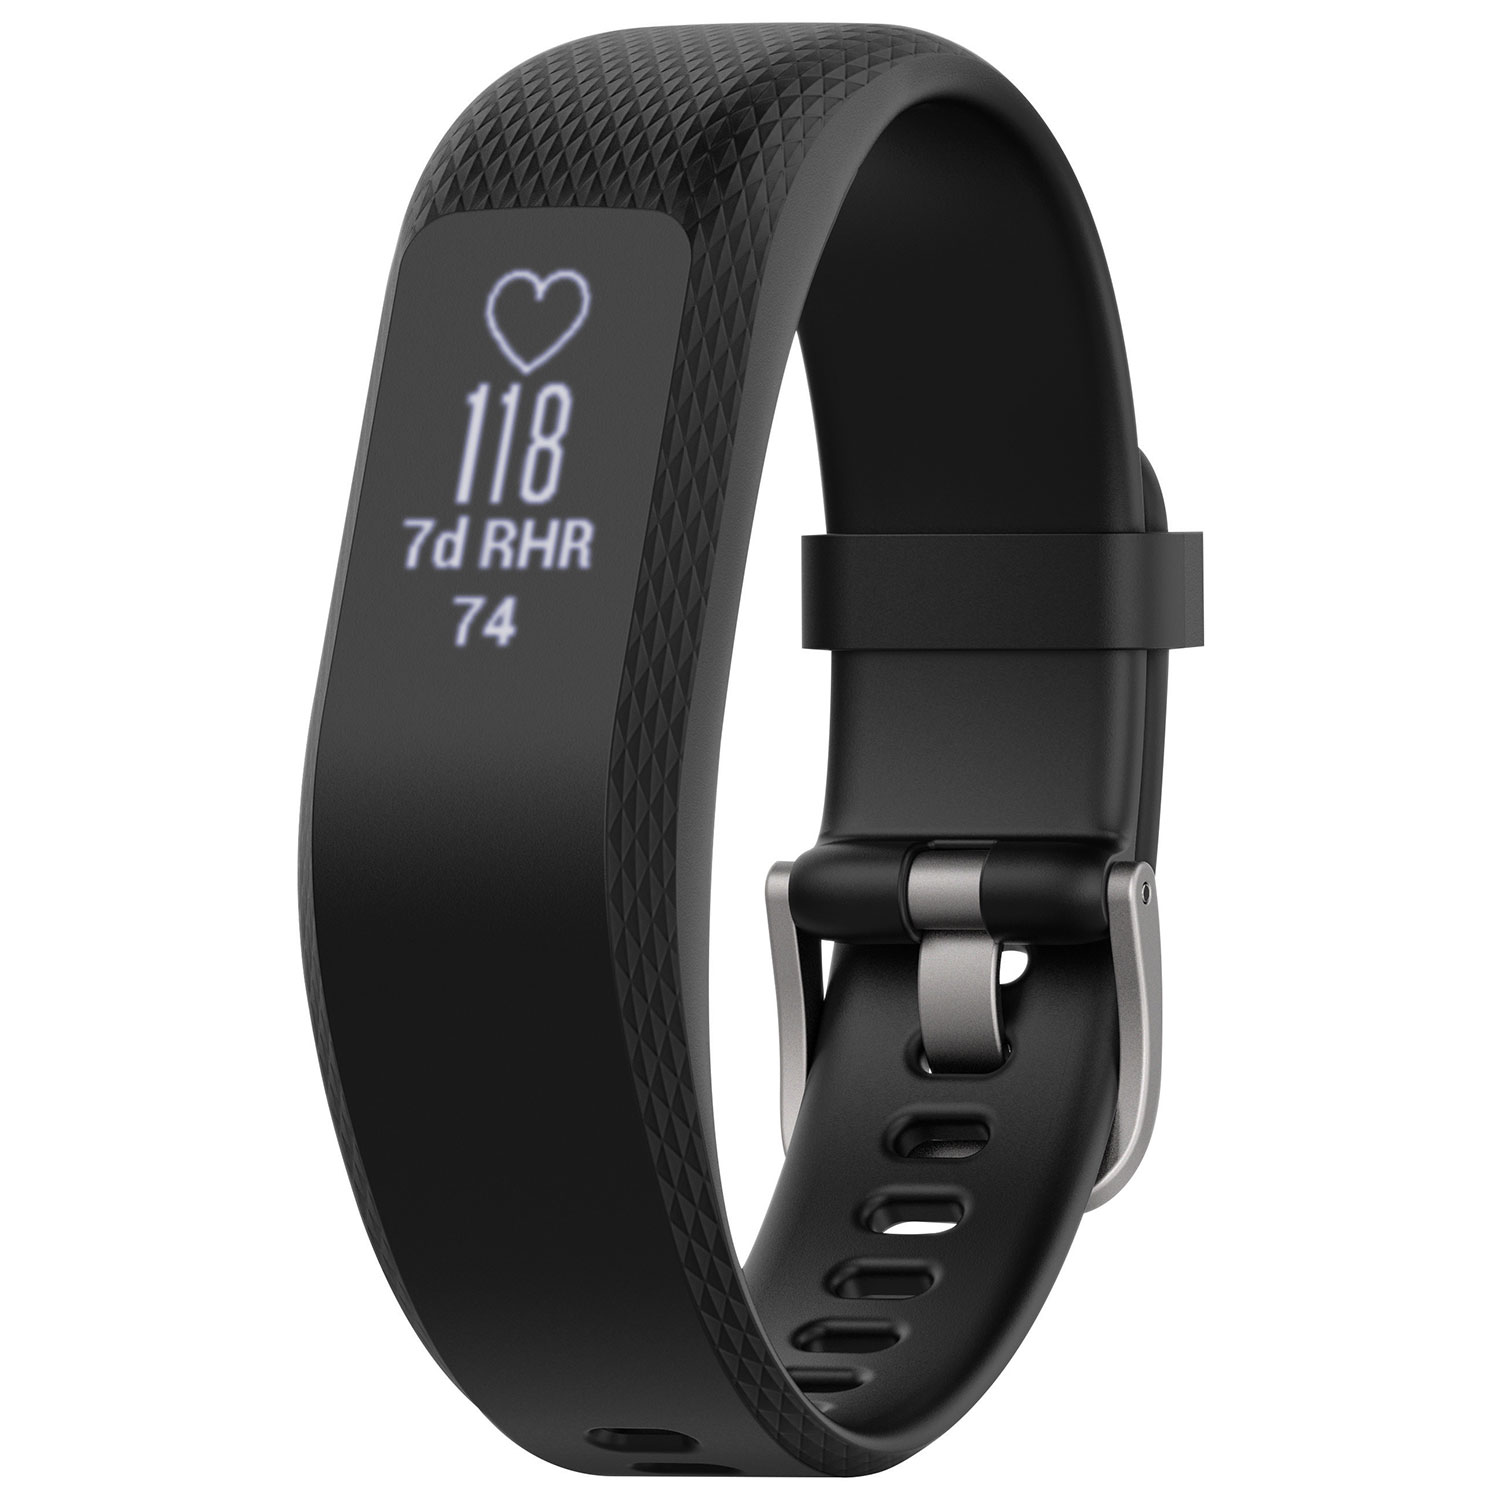 monitor products smart waterproof fitness activity product bracelet rate heart tracker wristband watches pedometer band image